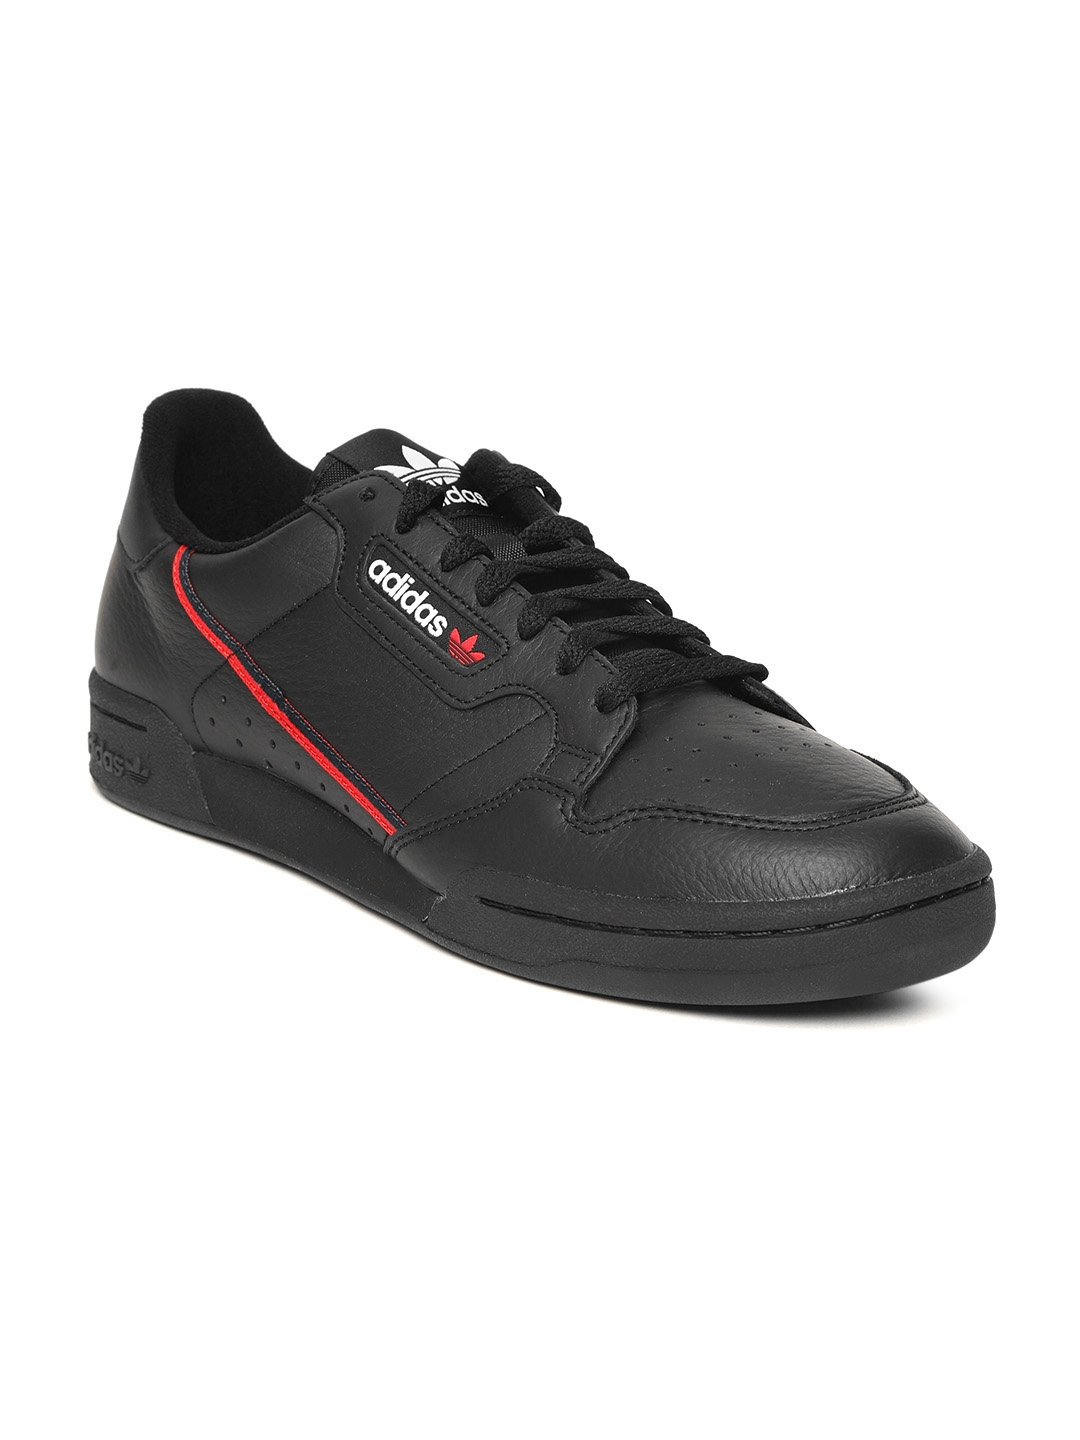 6a58b11f6119 Buy ADIDAS Originals Men Black Continental 80 Sneakers - Casual ...